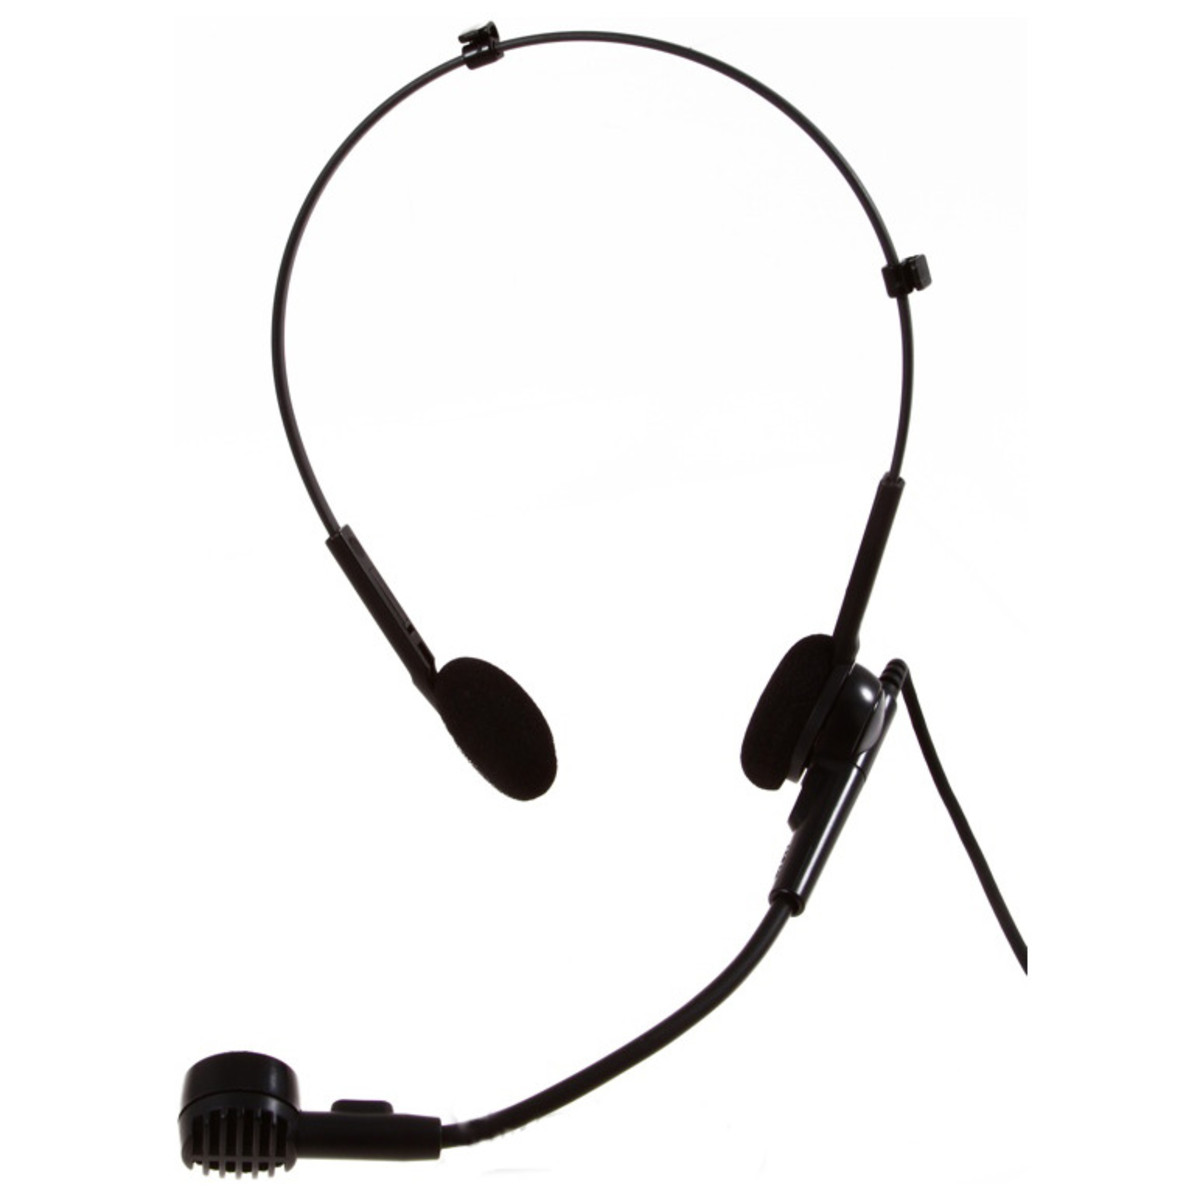 Audio Technica Pro8hex Hypercardioid Dynamic Headset Microphone At Gear4music